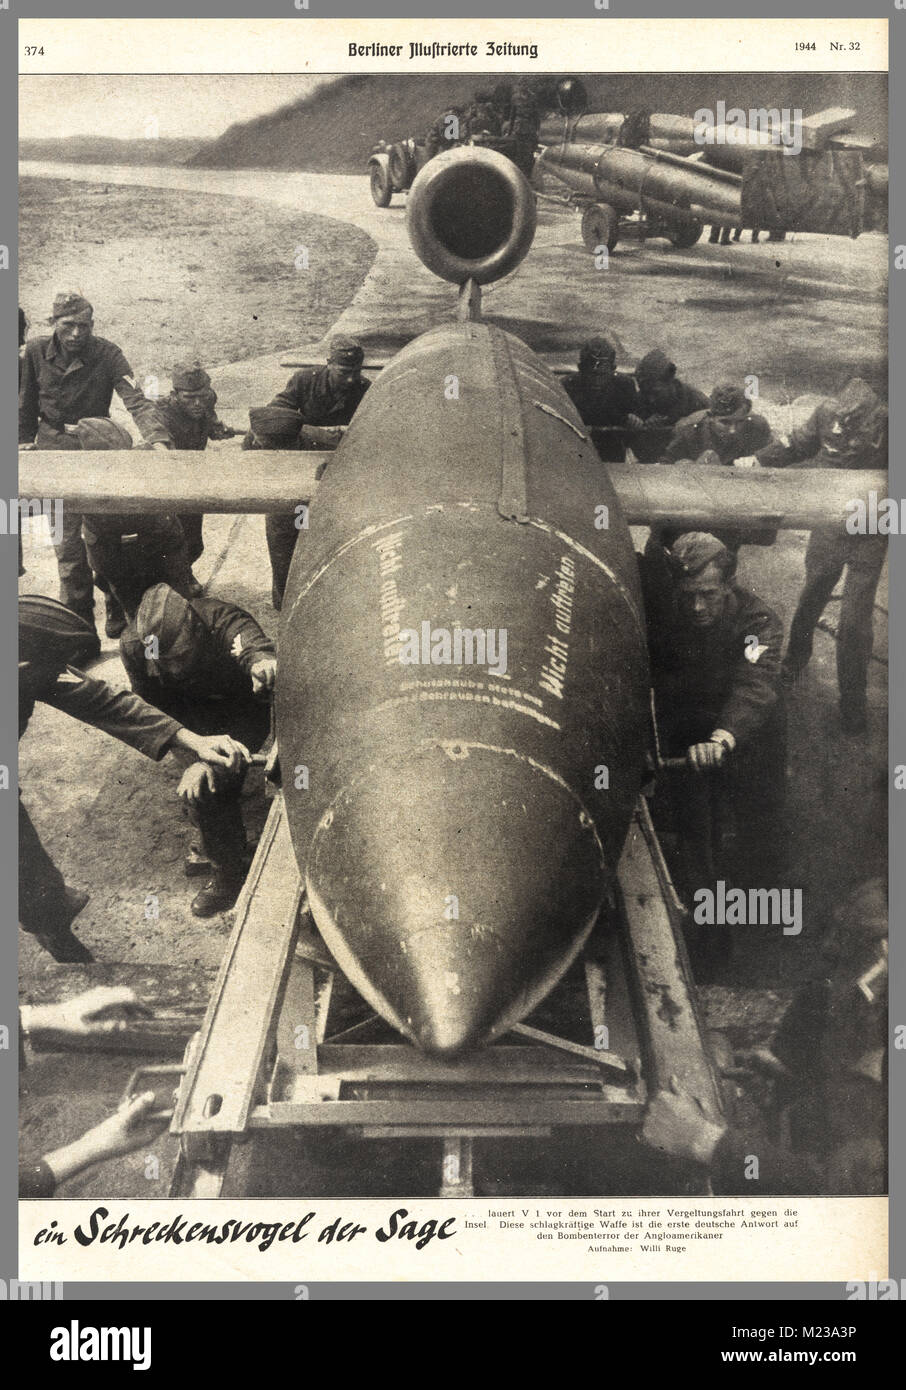 WW2 ....VI and V2 Rockets 1944/1945 Nazi Propaganda to the German People The 'miracle terror weapon' V1 - Stock Image